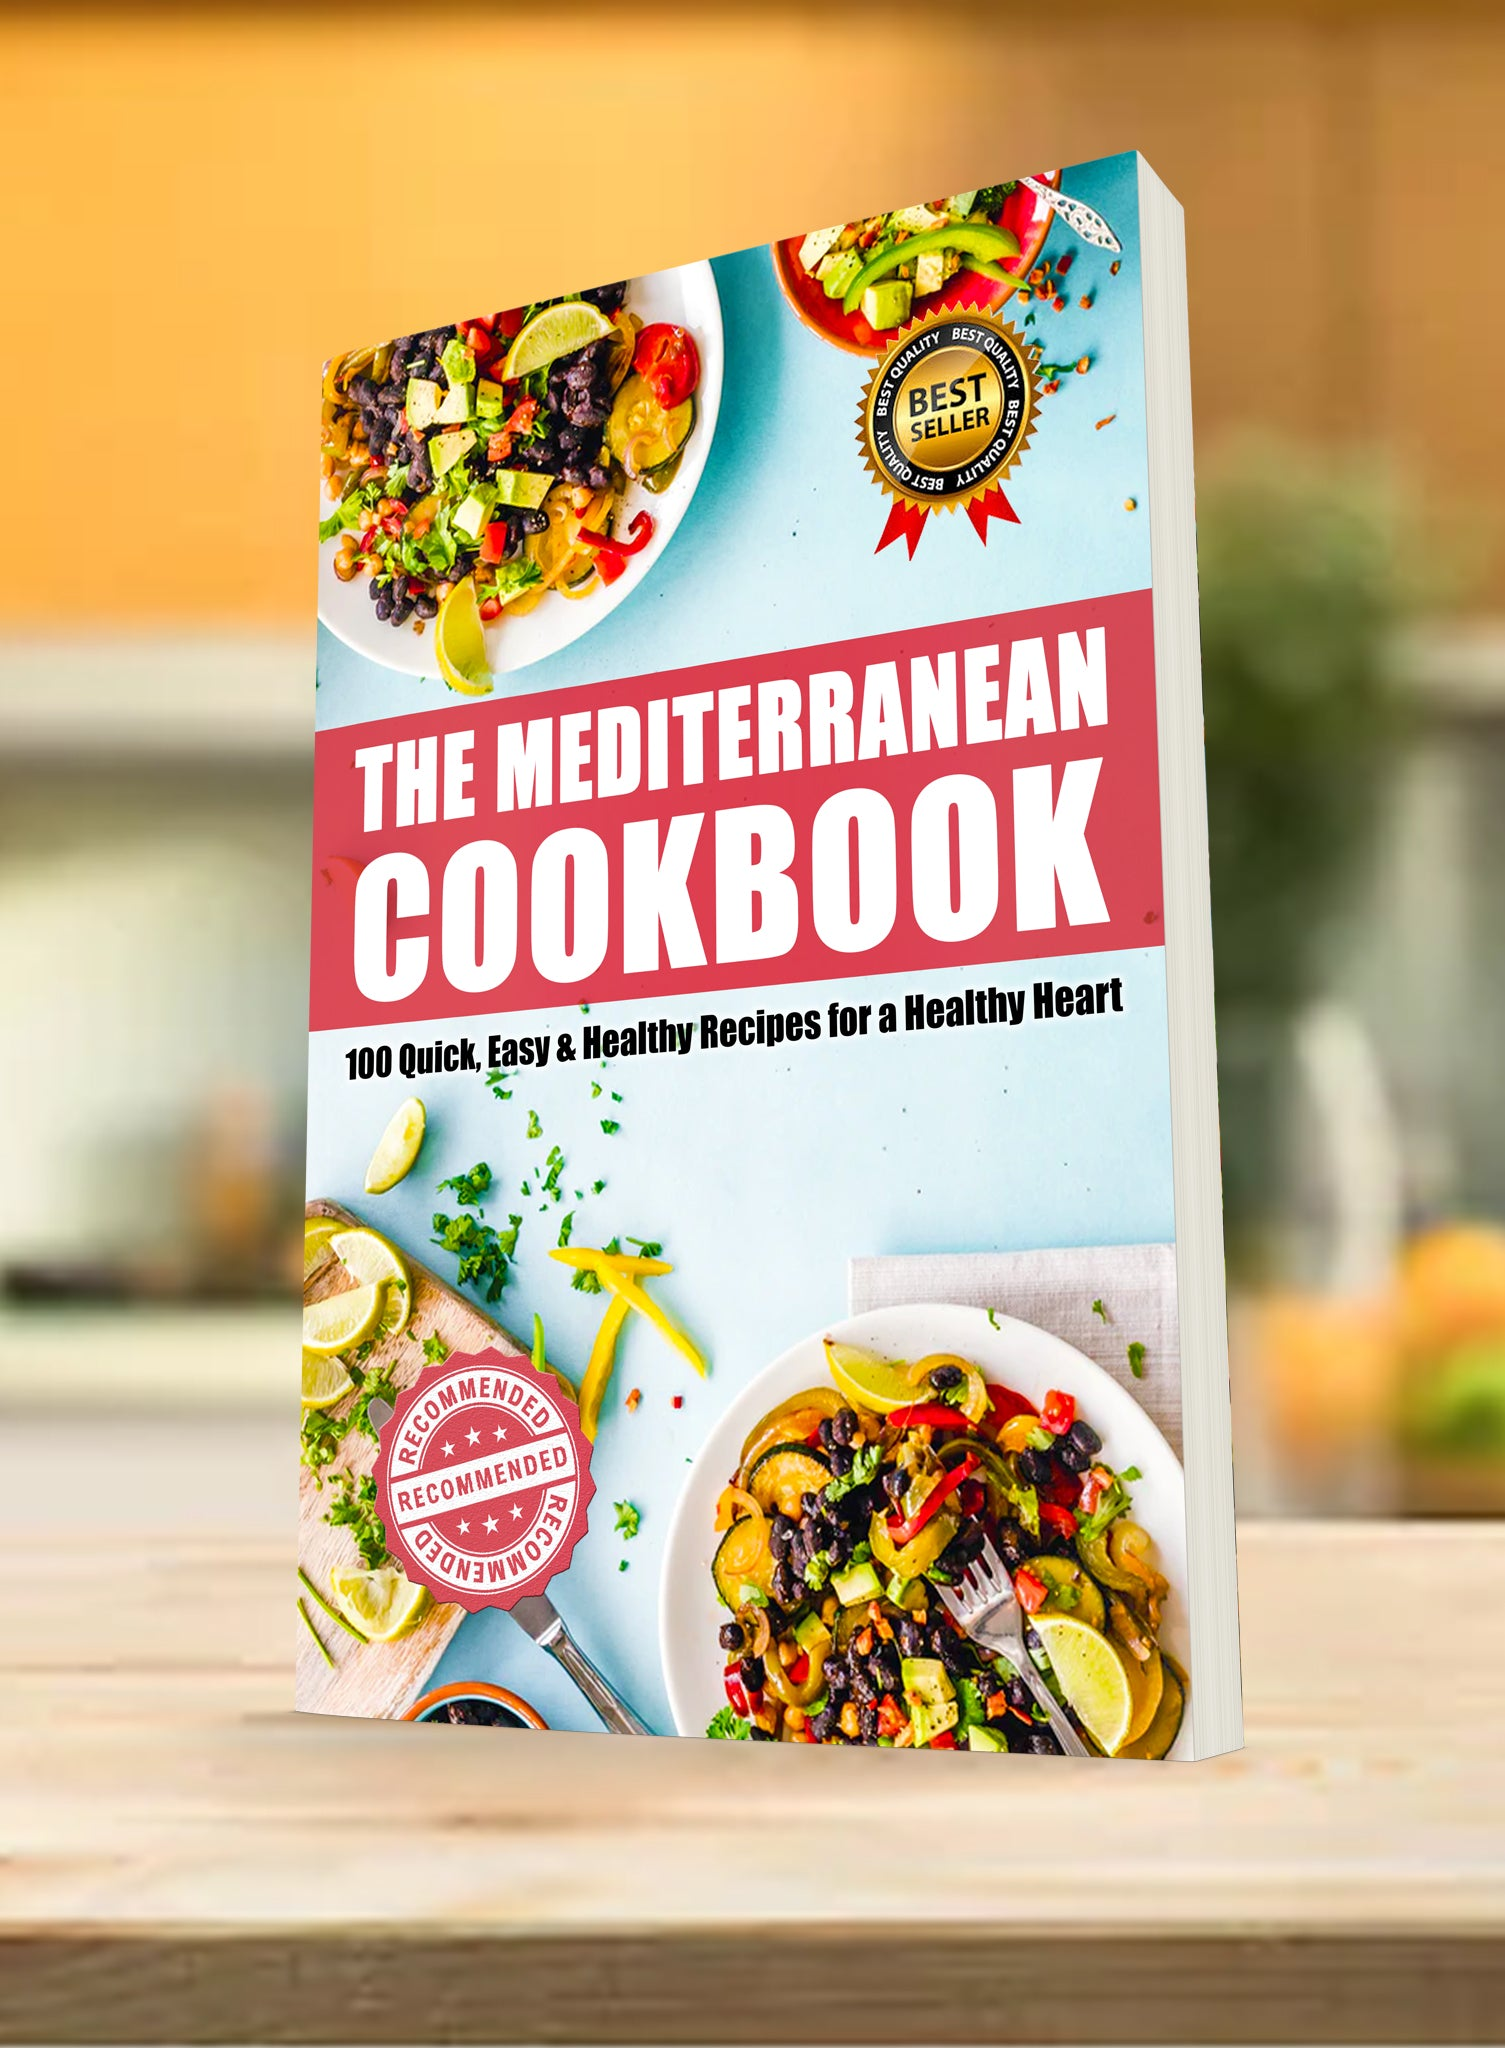 The Mediterranean Cookbook